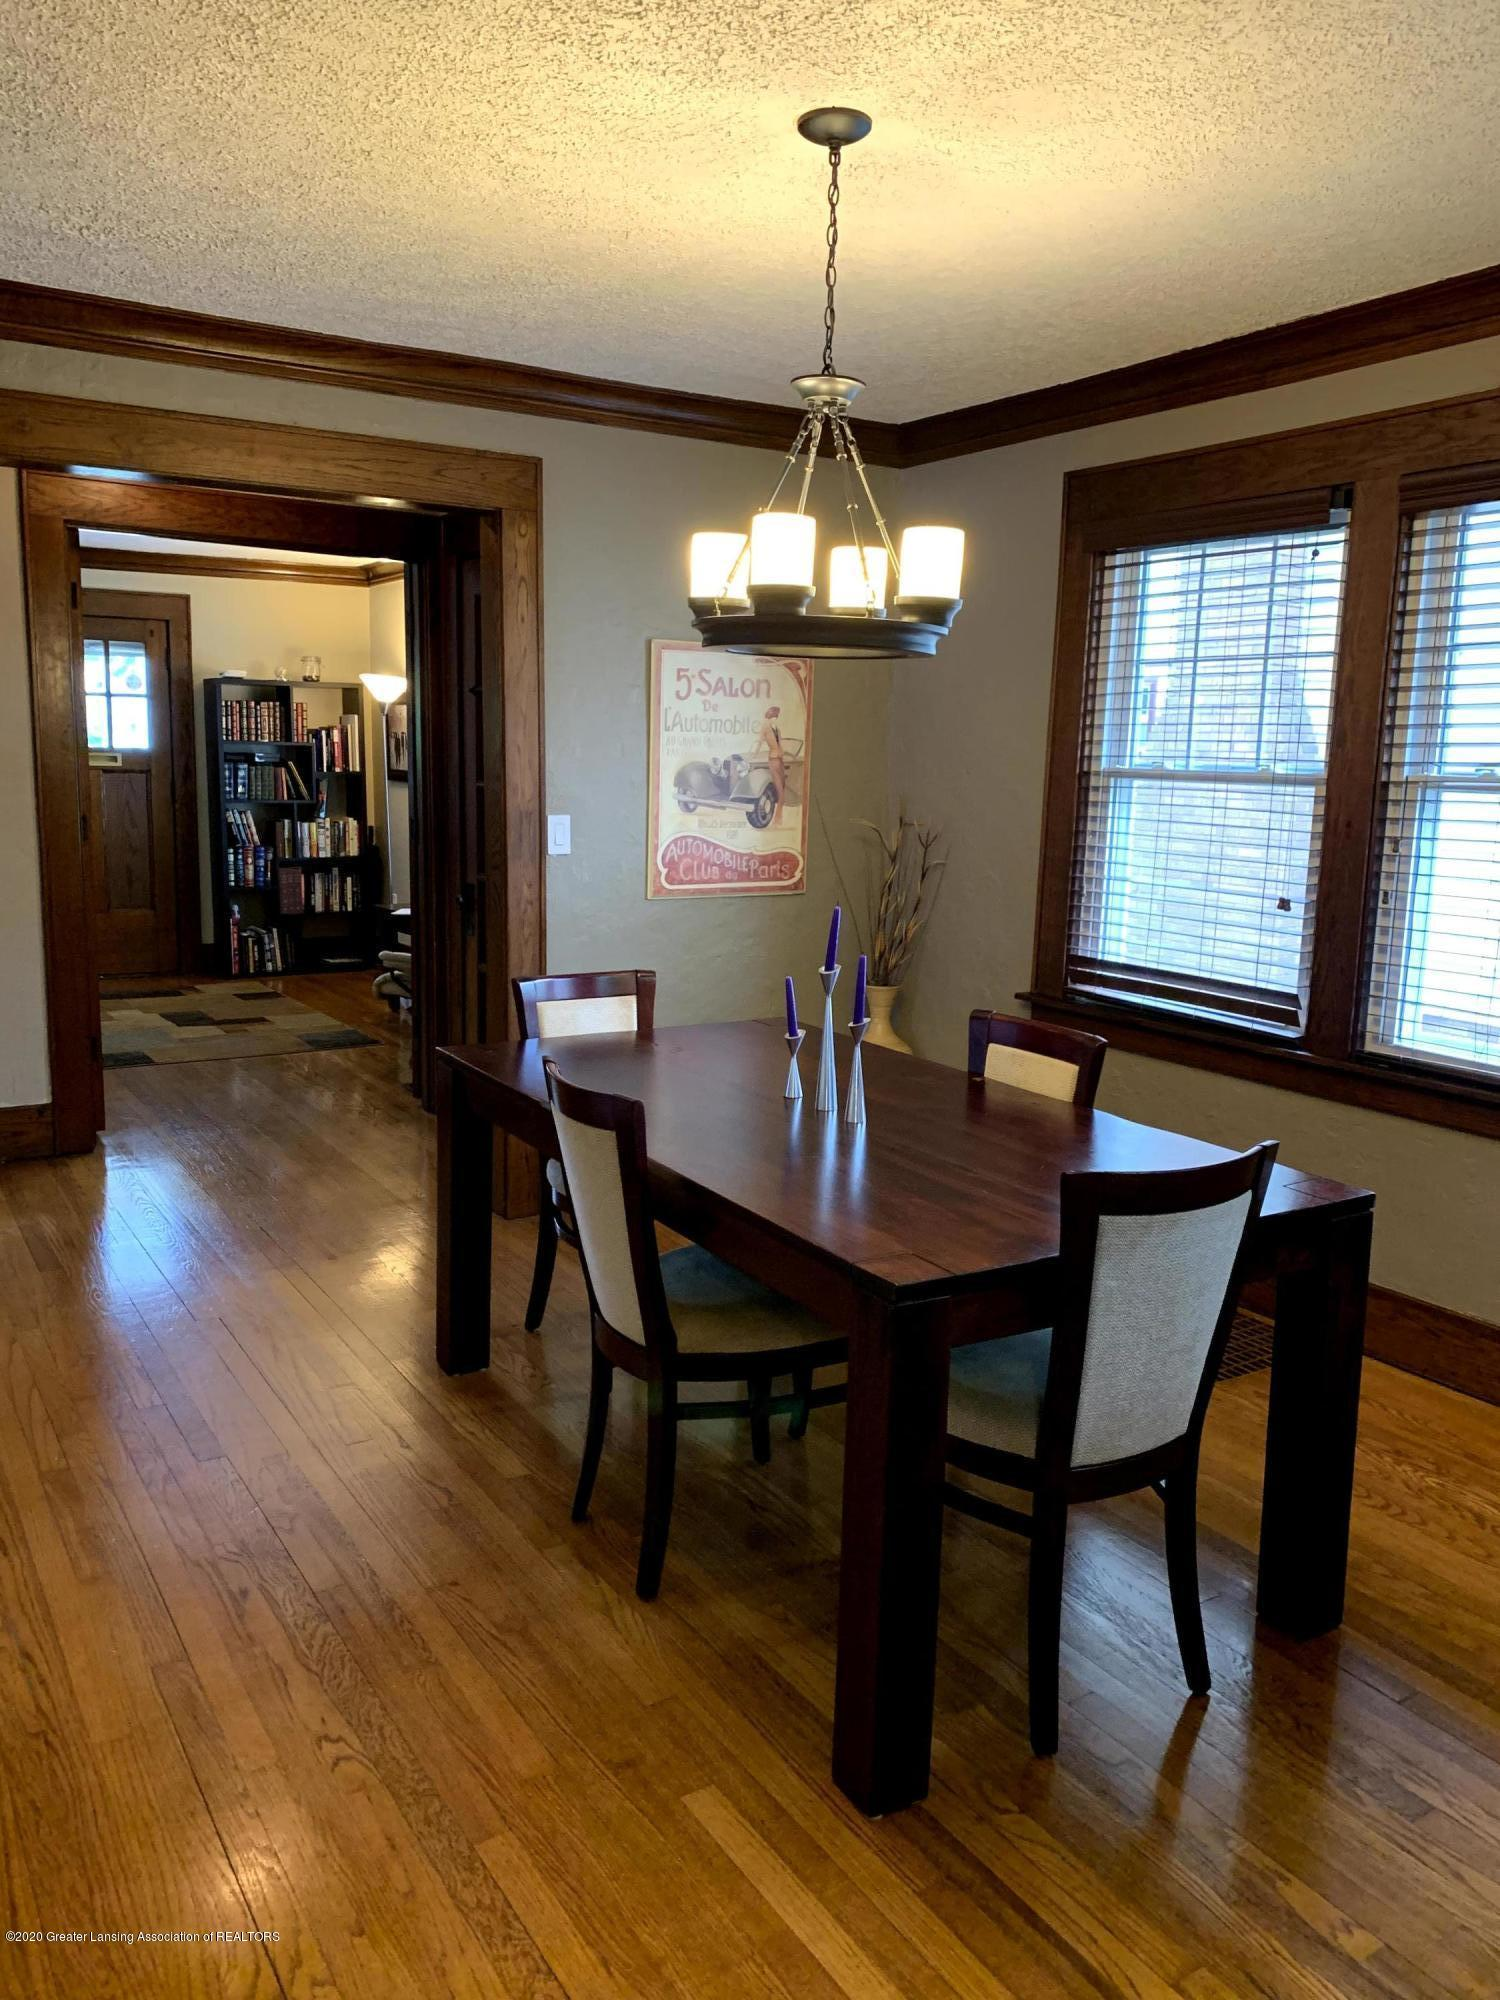 523 N Jenison Ave - Dining room - 10